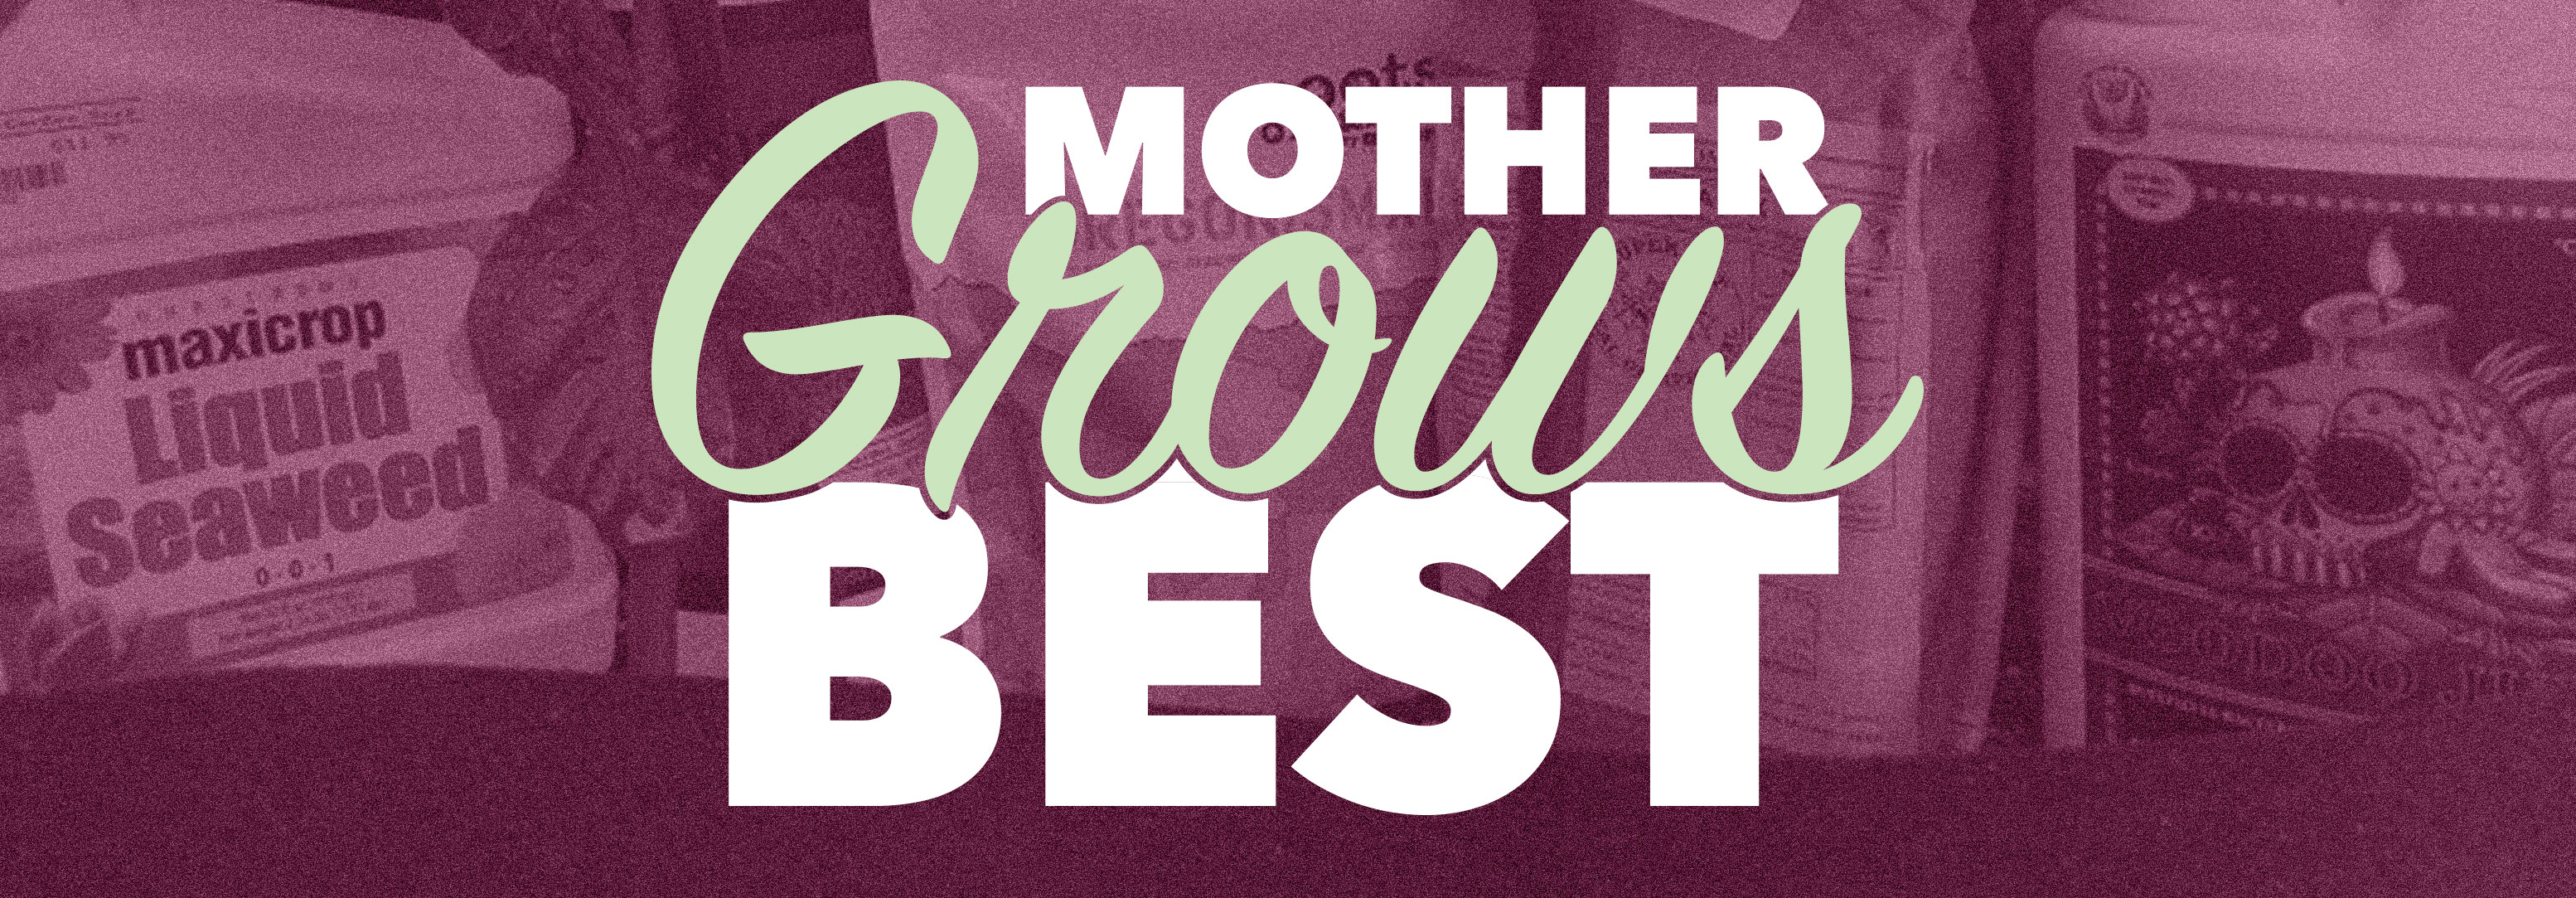 Talking-Shop-Mother-Grows-Best